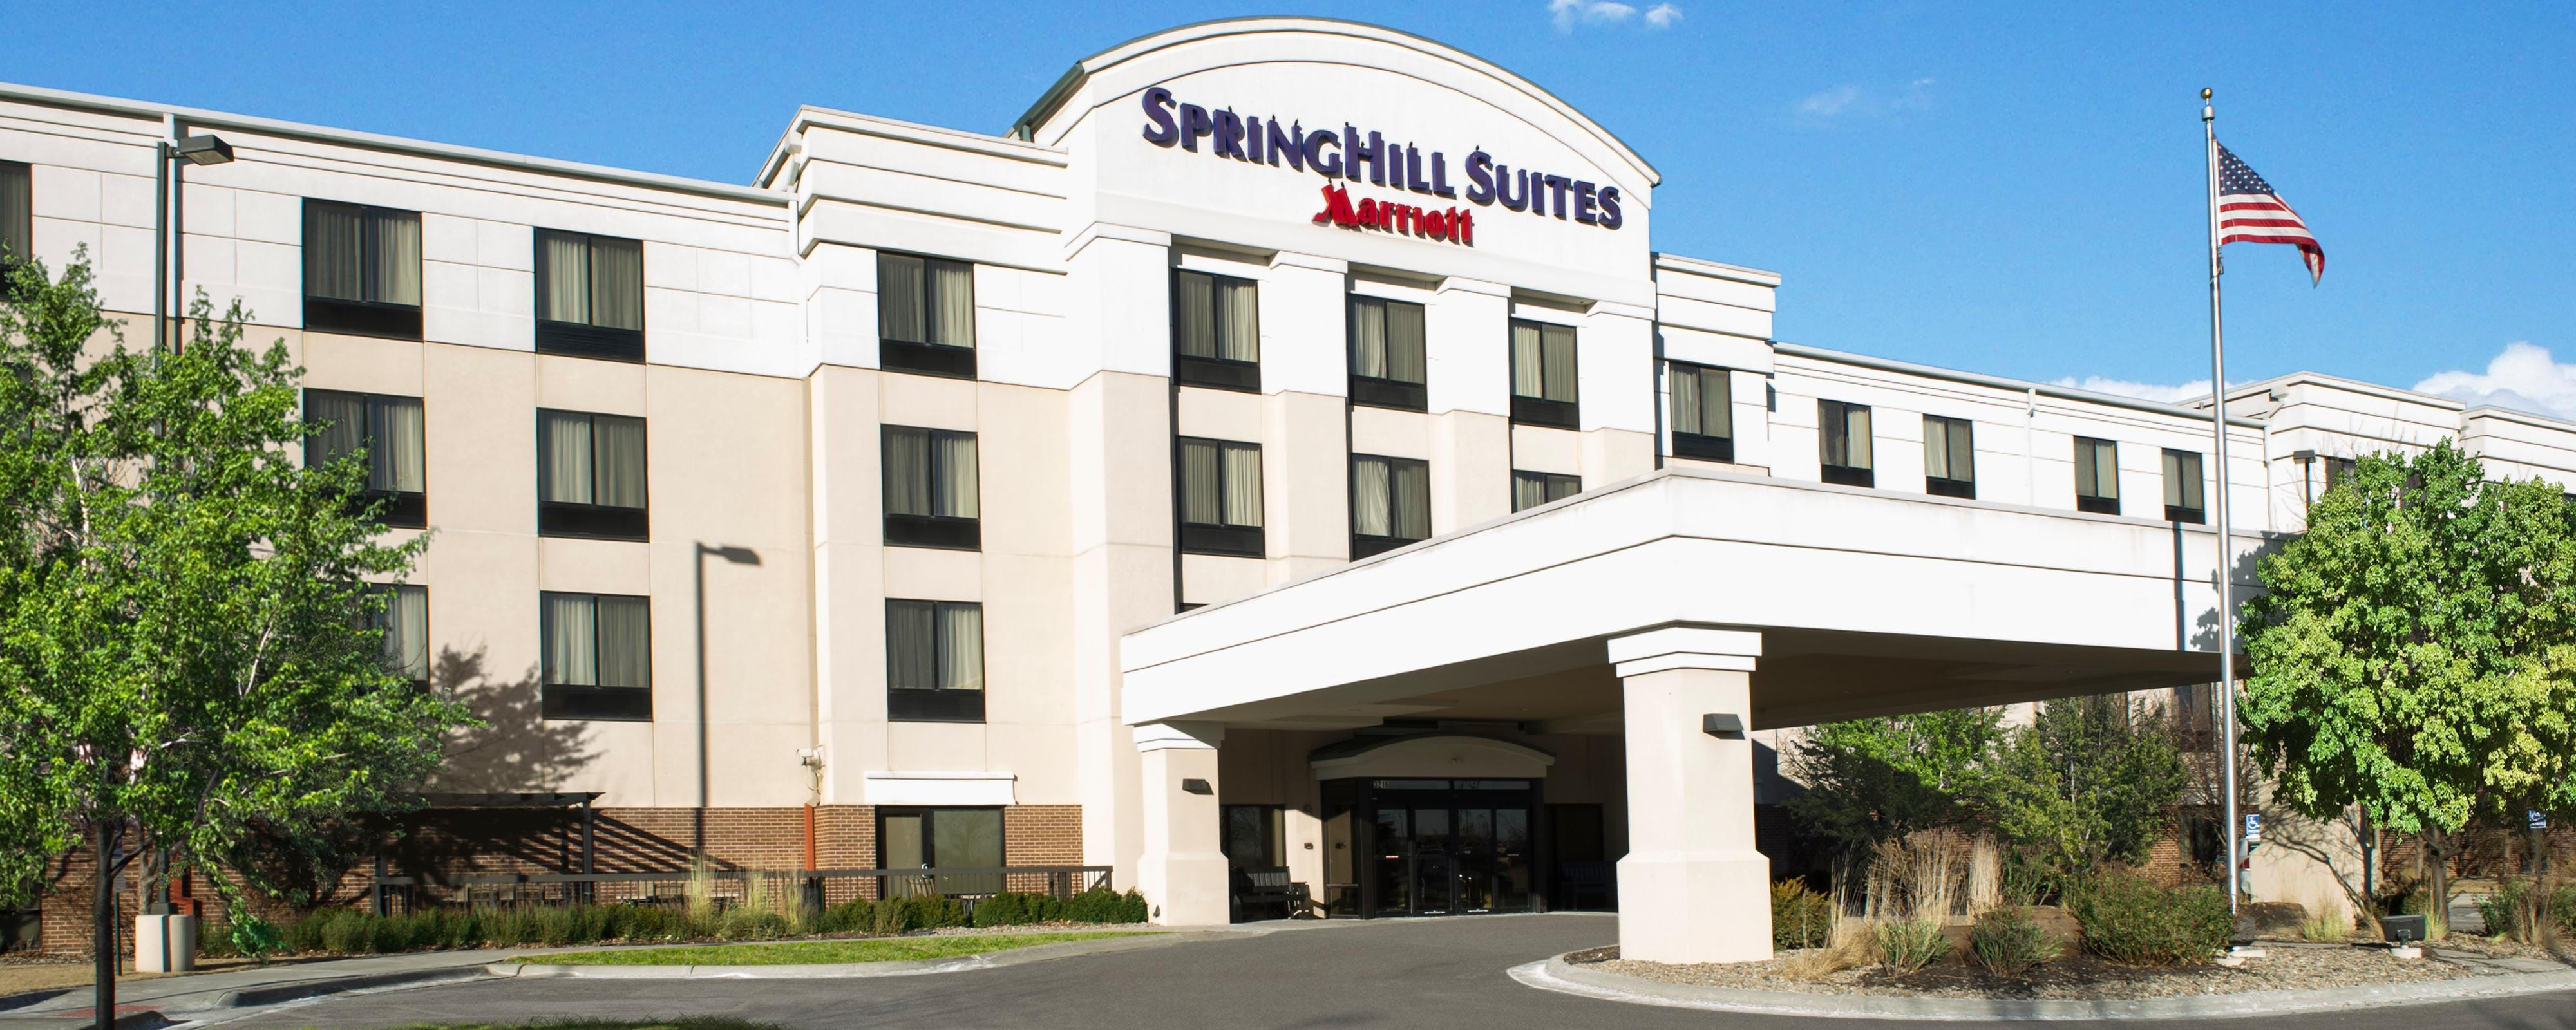 Fachada del SpringHill Suites Council Bluffs